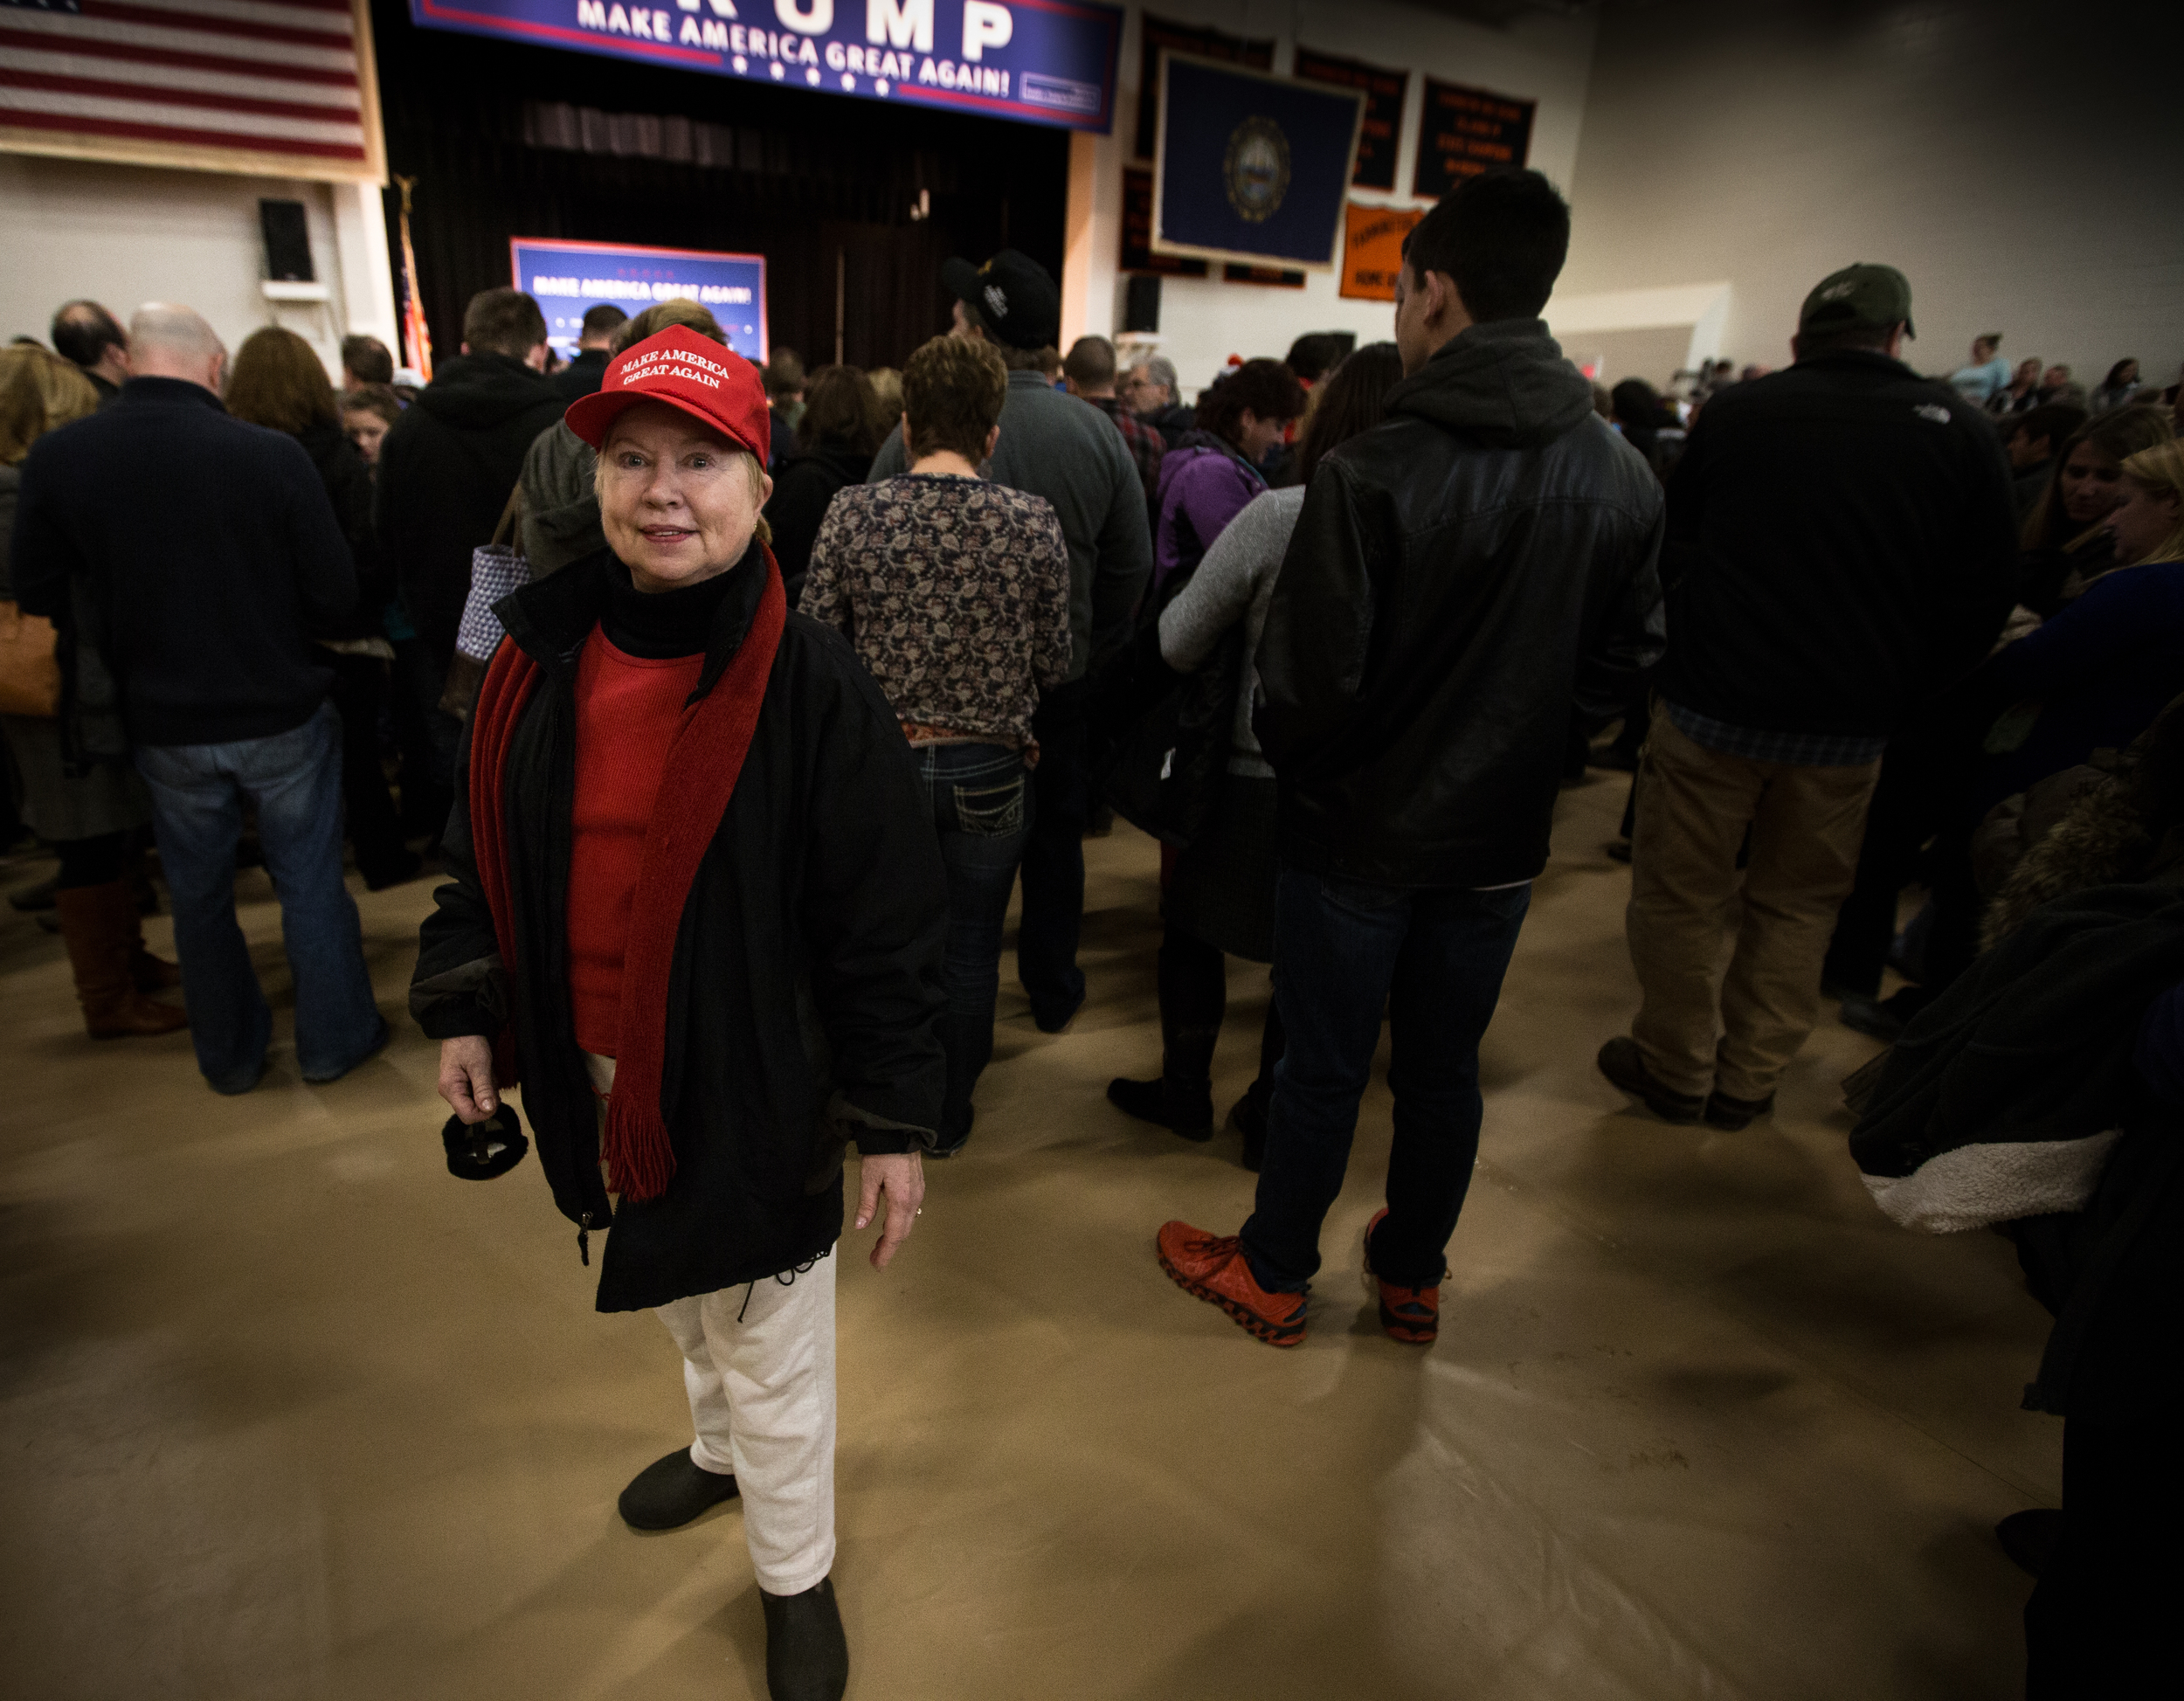 Donald Trump supporter Nancy Patrie-Iwanicki of Middleton, NH poses for a portrait at a Donald J. Trump for President Rally at Farmington High School, 40 Thayer Dr., Farmington, NH on Jan. 26, 2016.